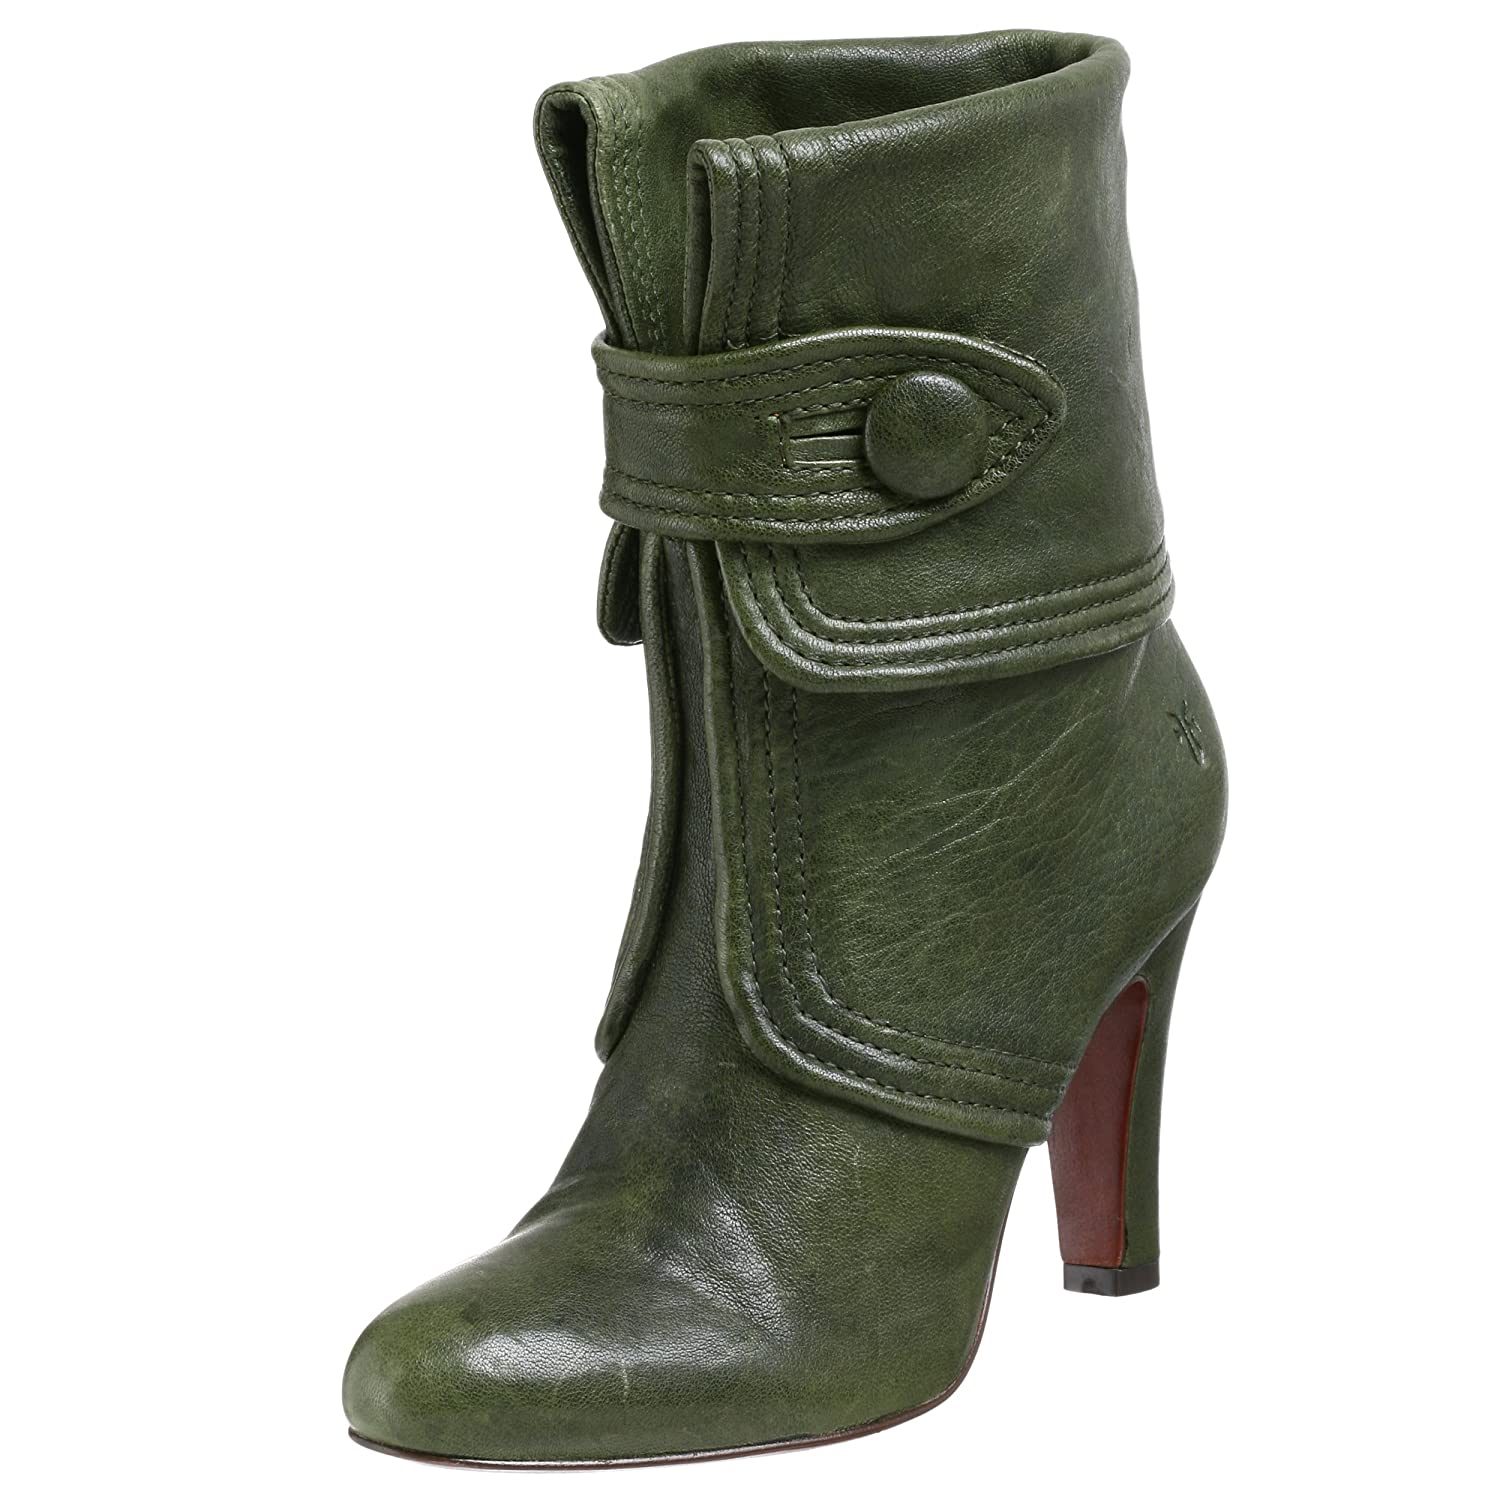 FRYE Ava Button Bootie - Free Overnight Shipping & Return Shipping: Endless.com